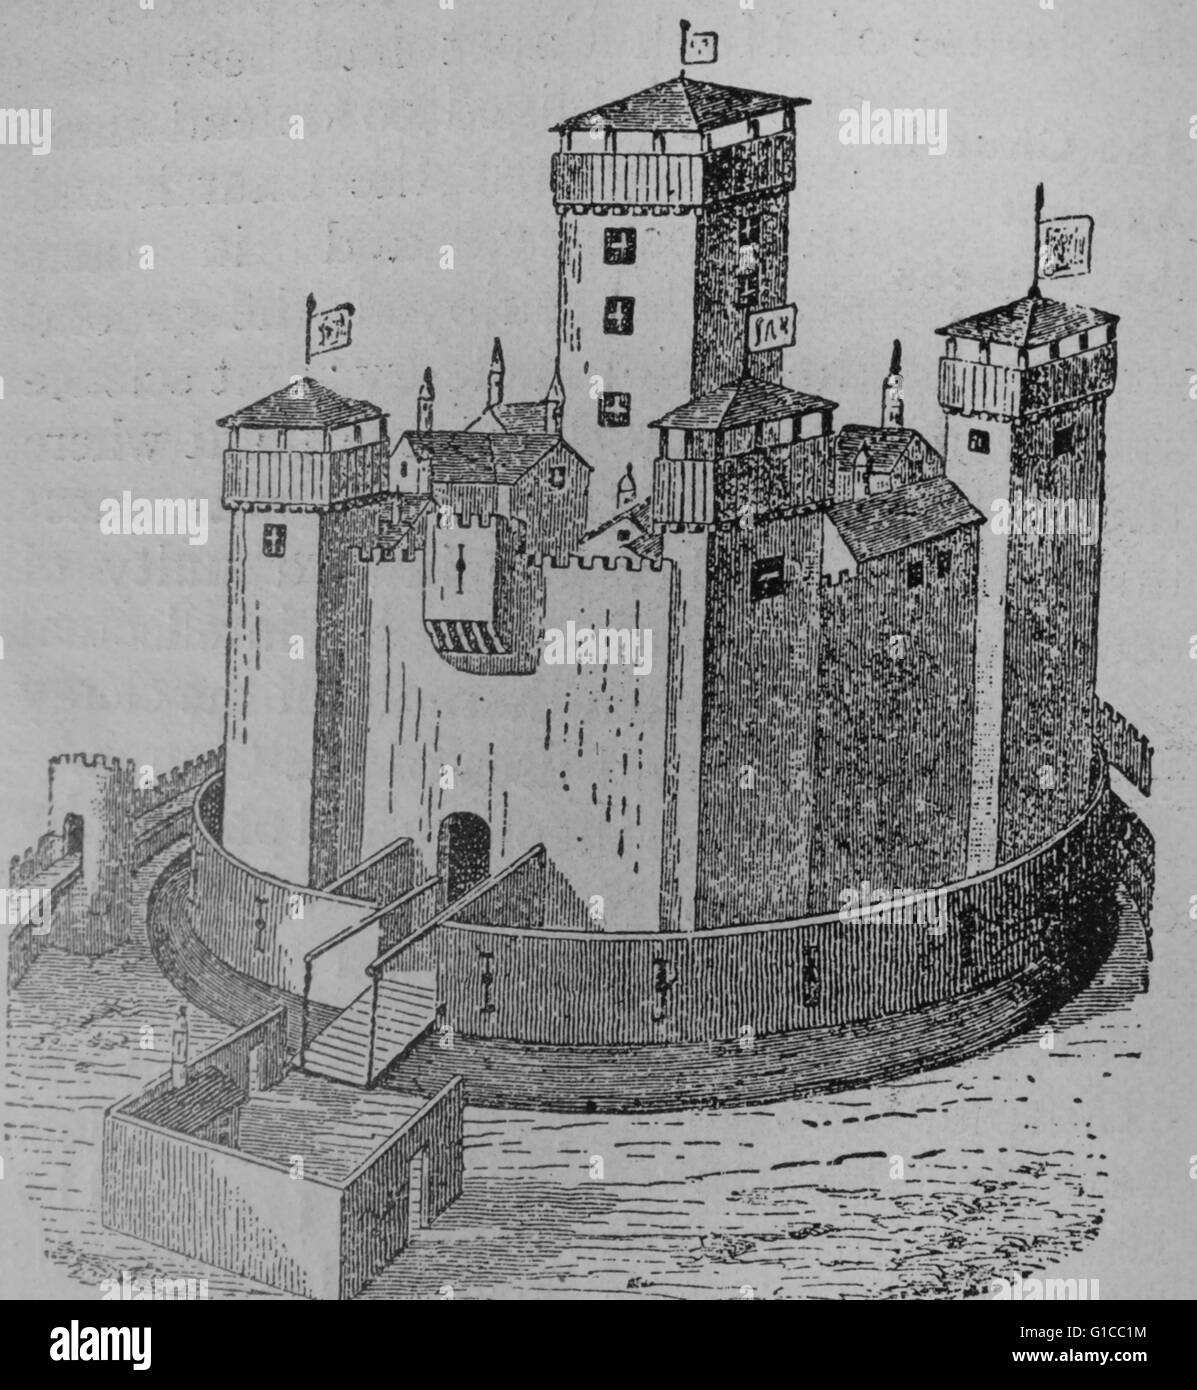 Engraving depicting a typical feudal castle of France. - Stock Image